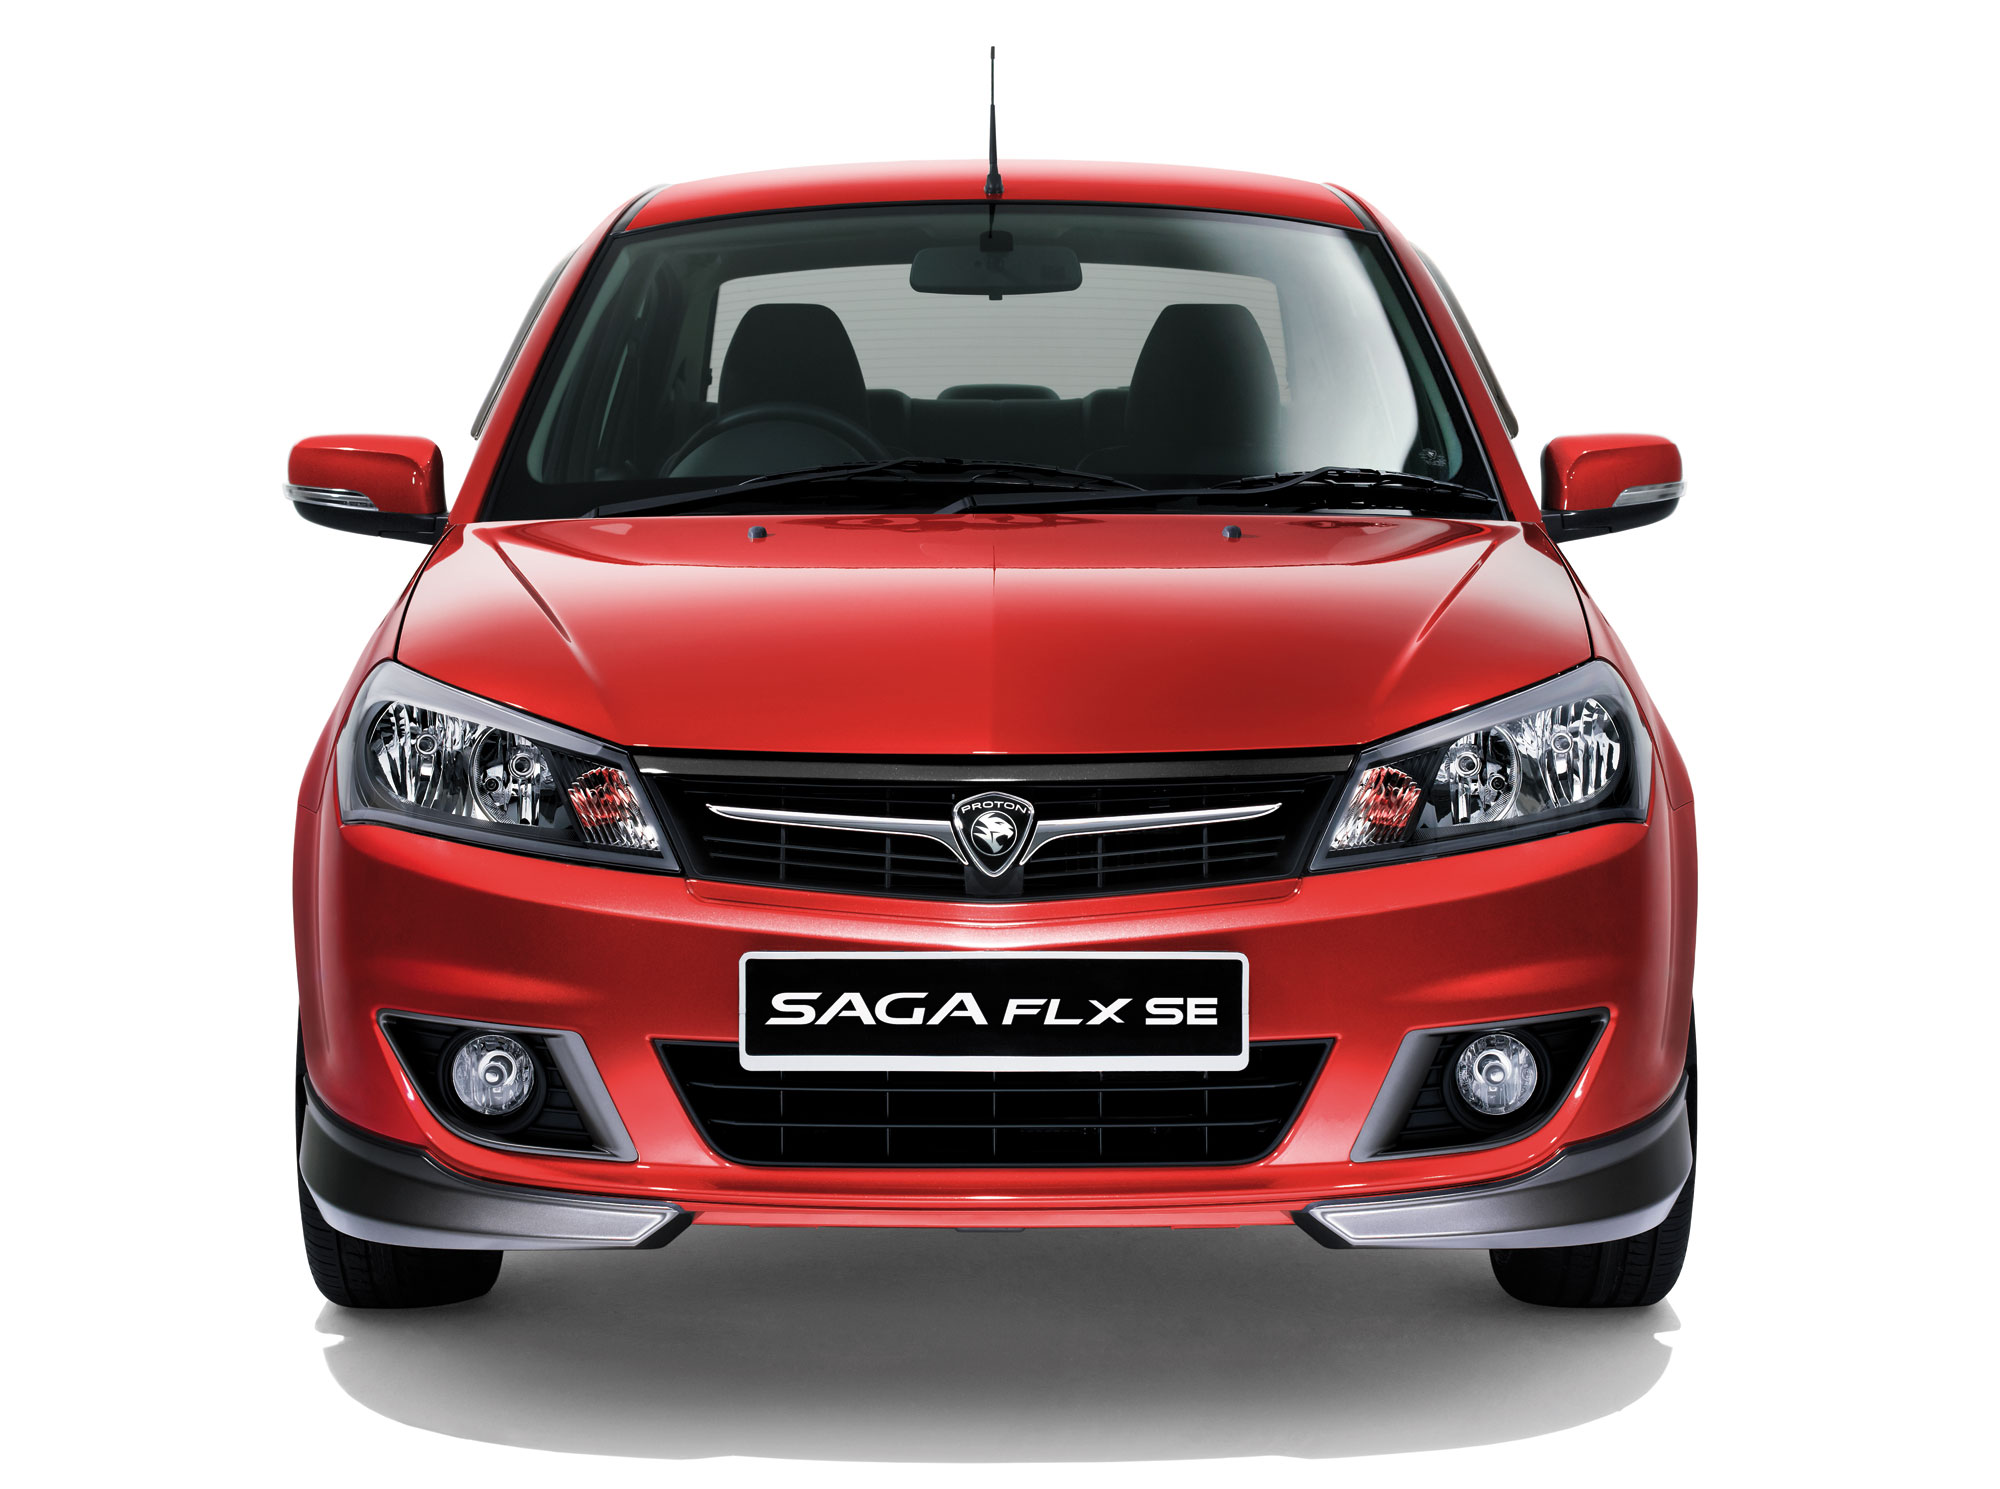 proton saga flx specs 2011 2012 2013 2014 2015 2016 autoevolution. Black Bedroom Furniture Sets. Home Design Ideas